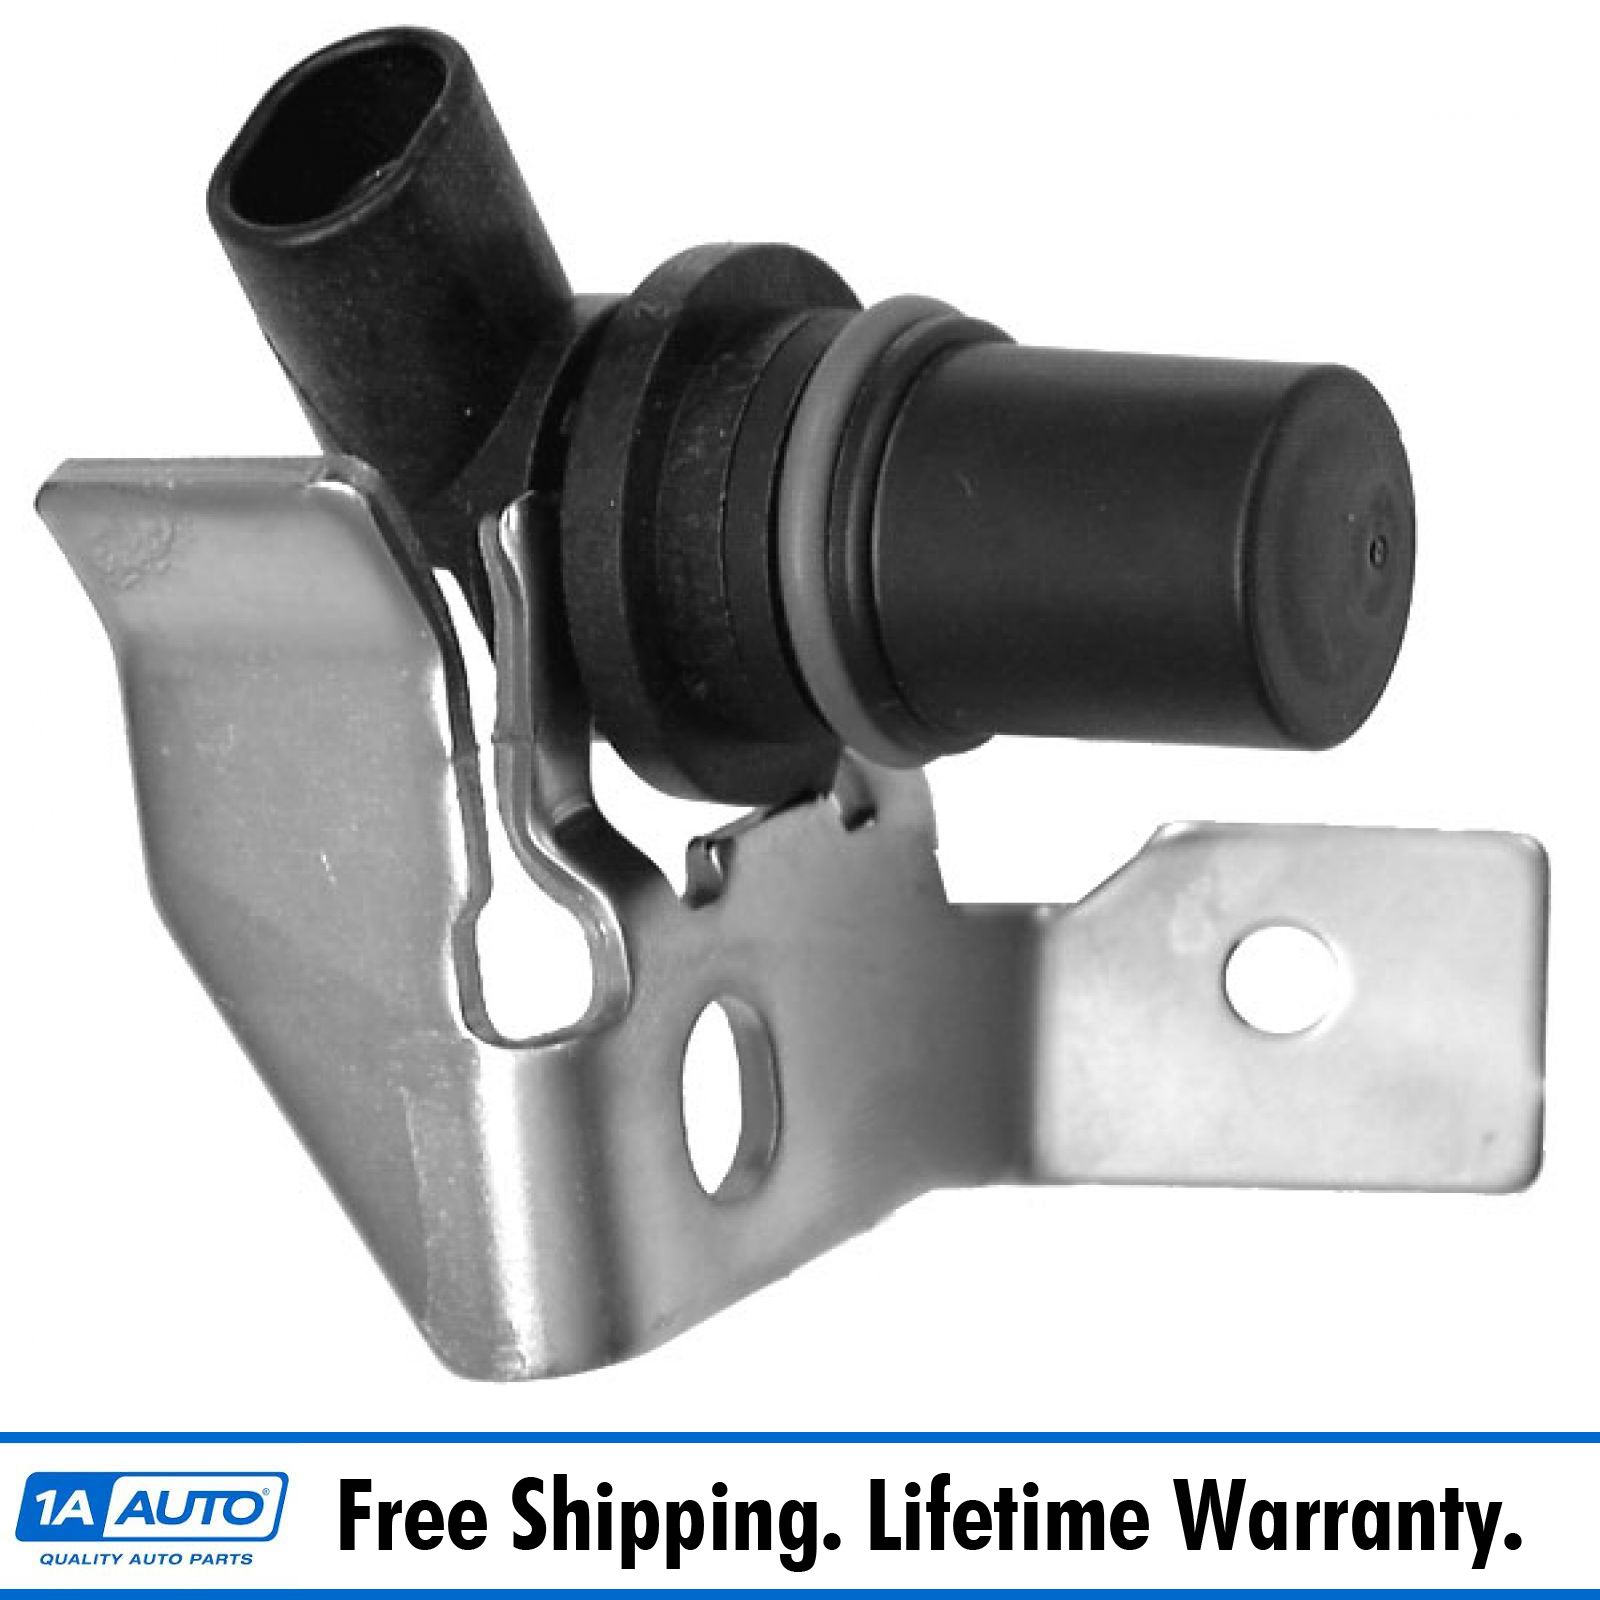 Auto Transmission Vehicle Speed Sensor VSS for Chevy GMC Truck with 17 Bolt Pan